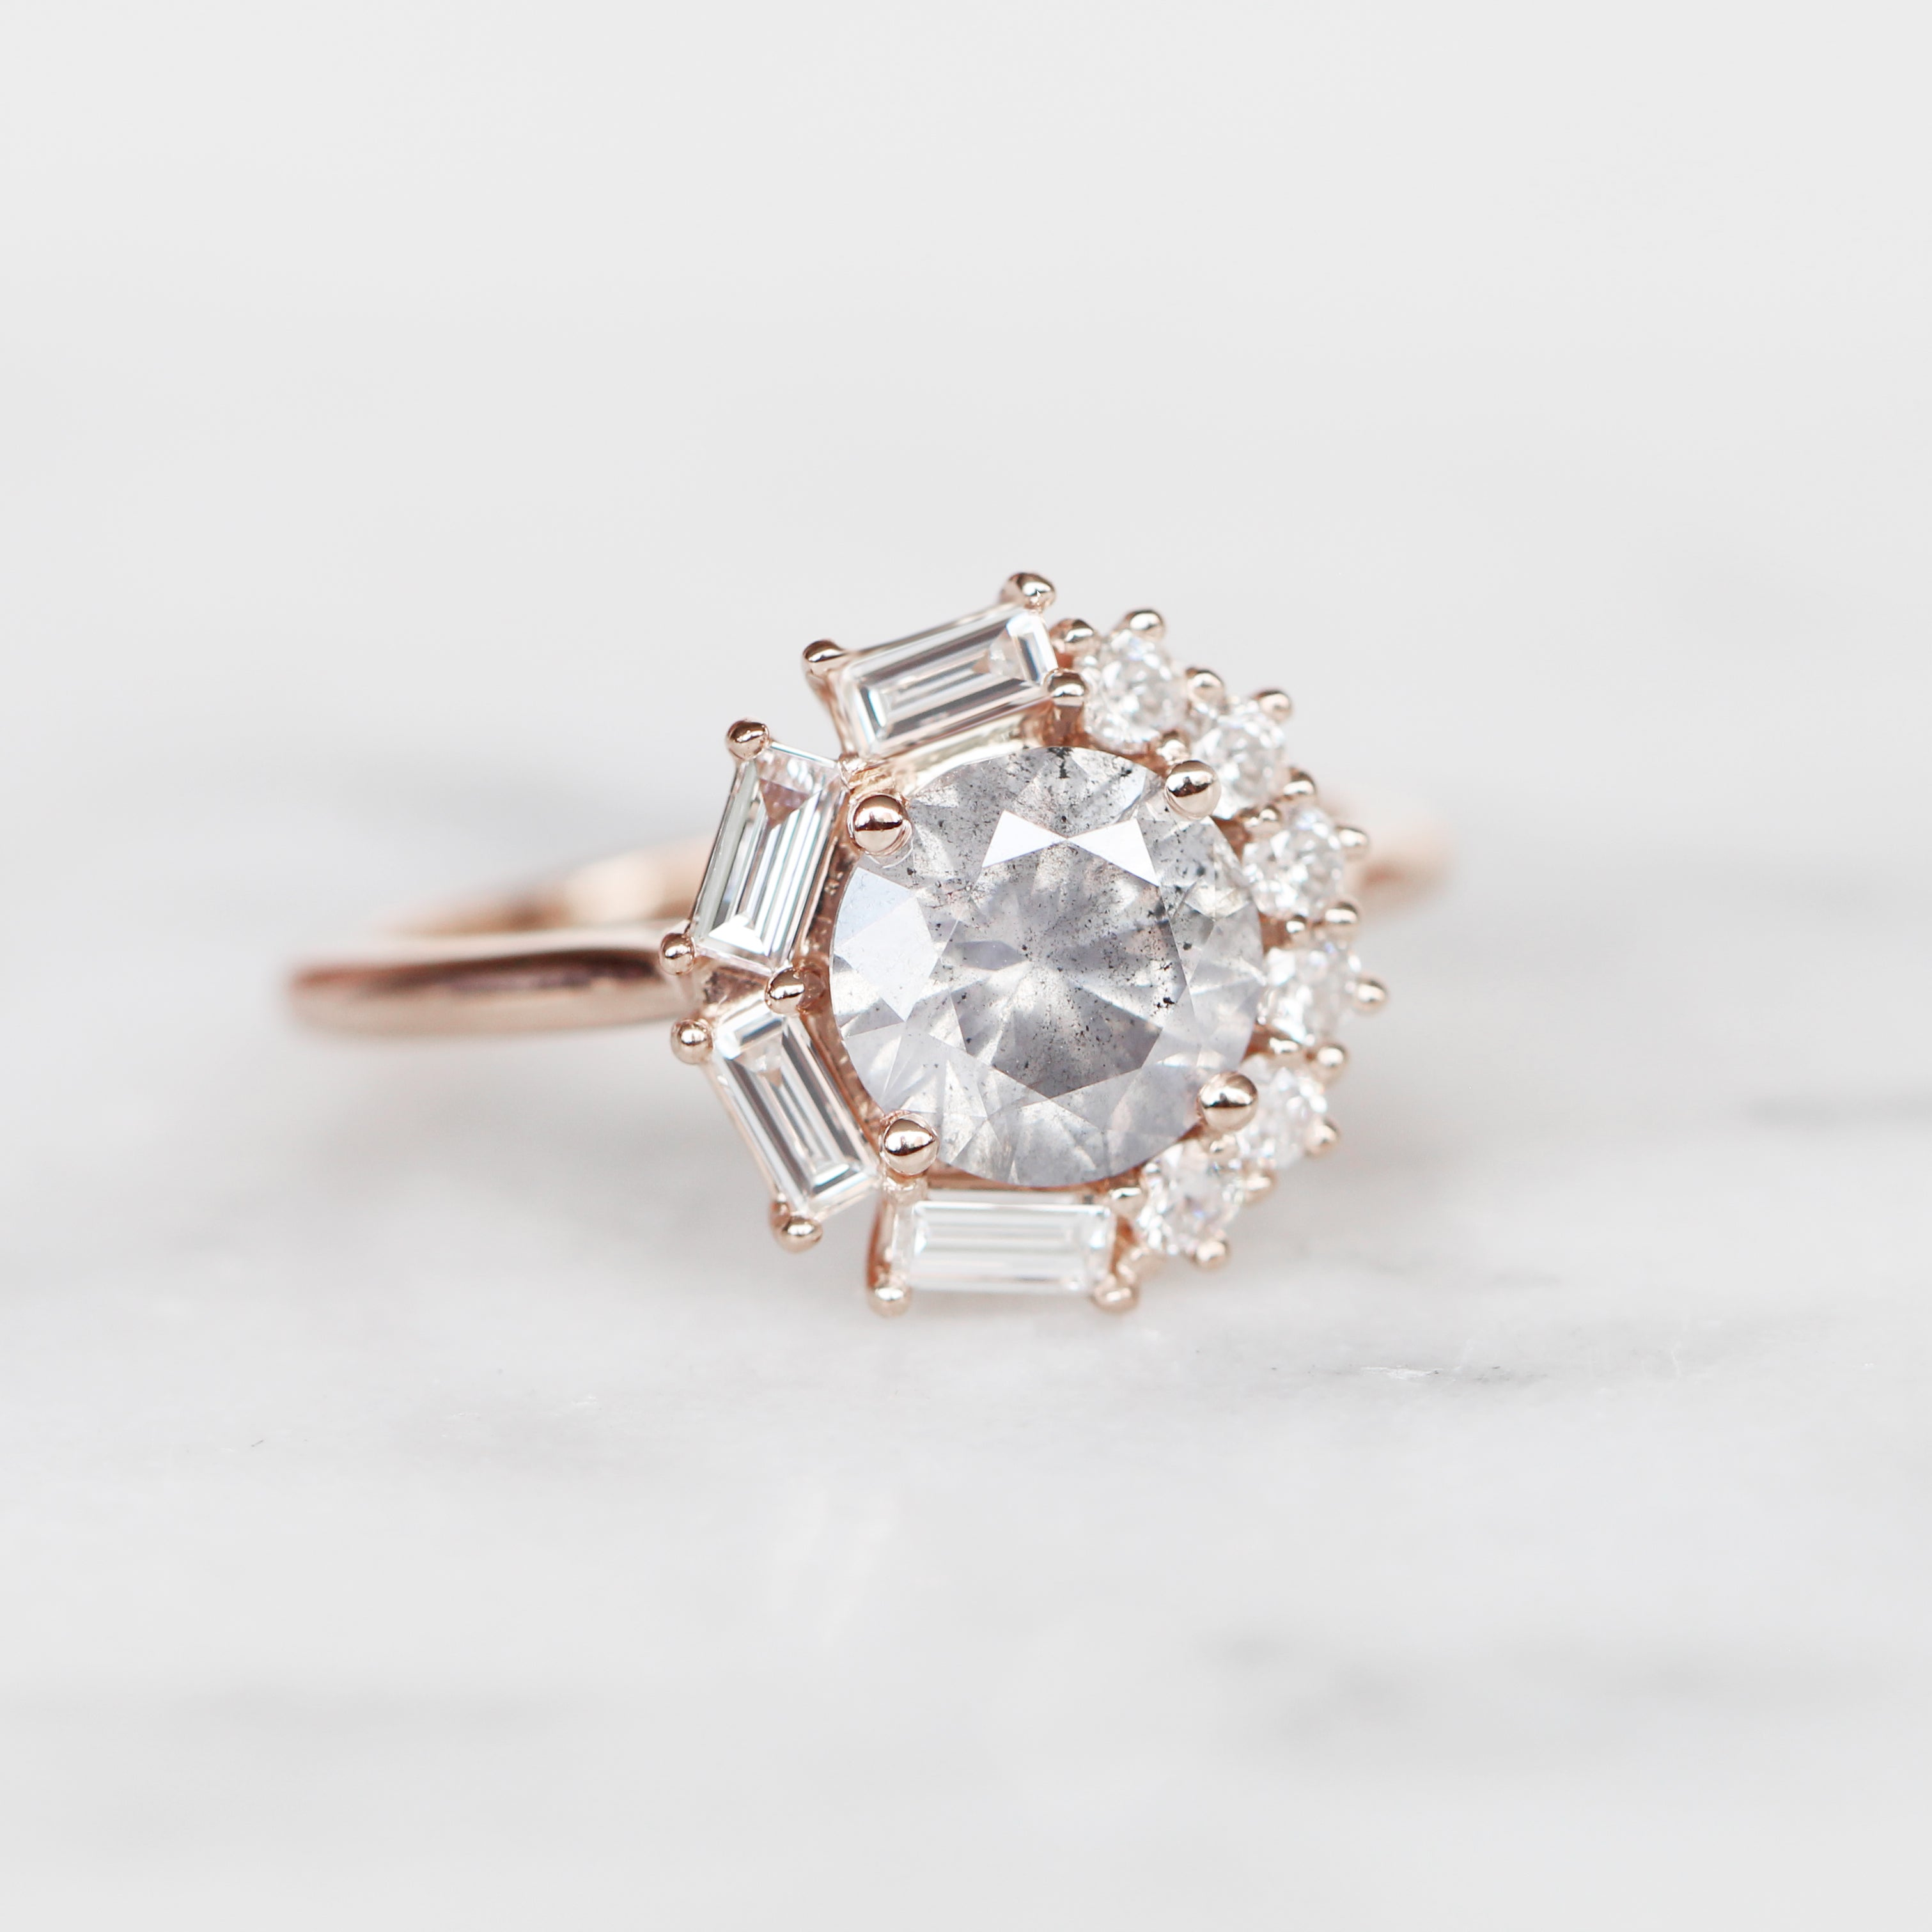 Collins ring with 1.40 carat brilliant round celestial diamond in 14k rose gold - ready to size and ship - Midwinter Co. Alternative Bridal Rings and Modern Fine Jewelry